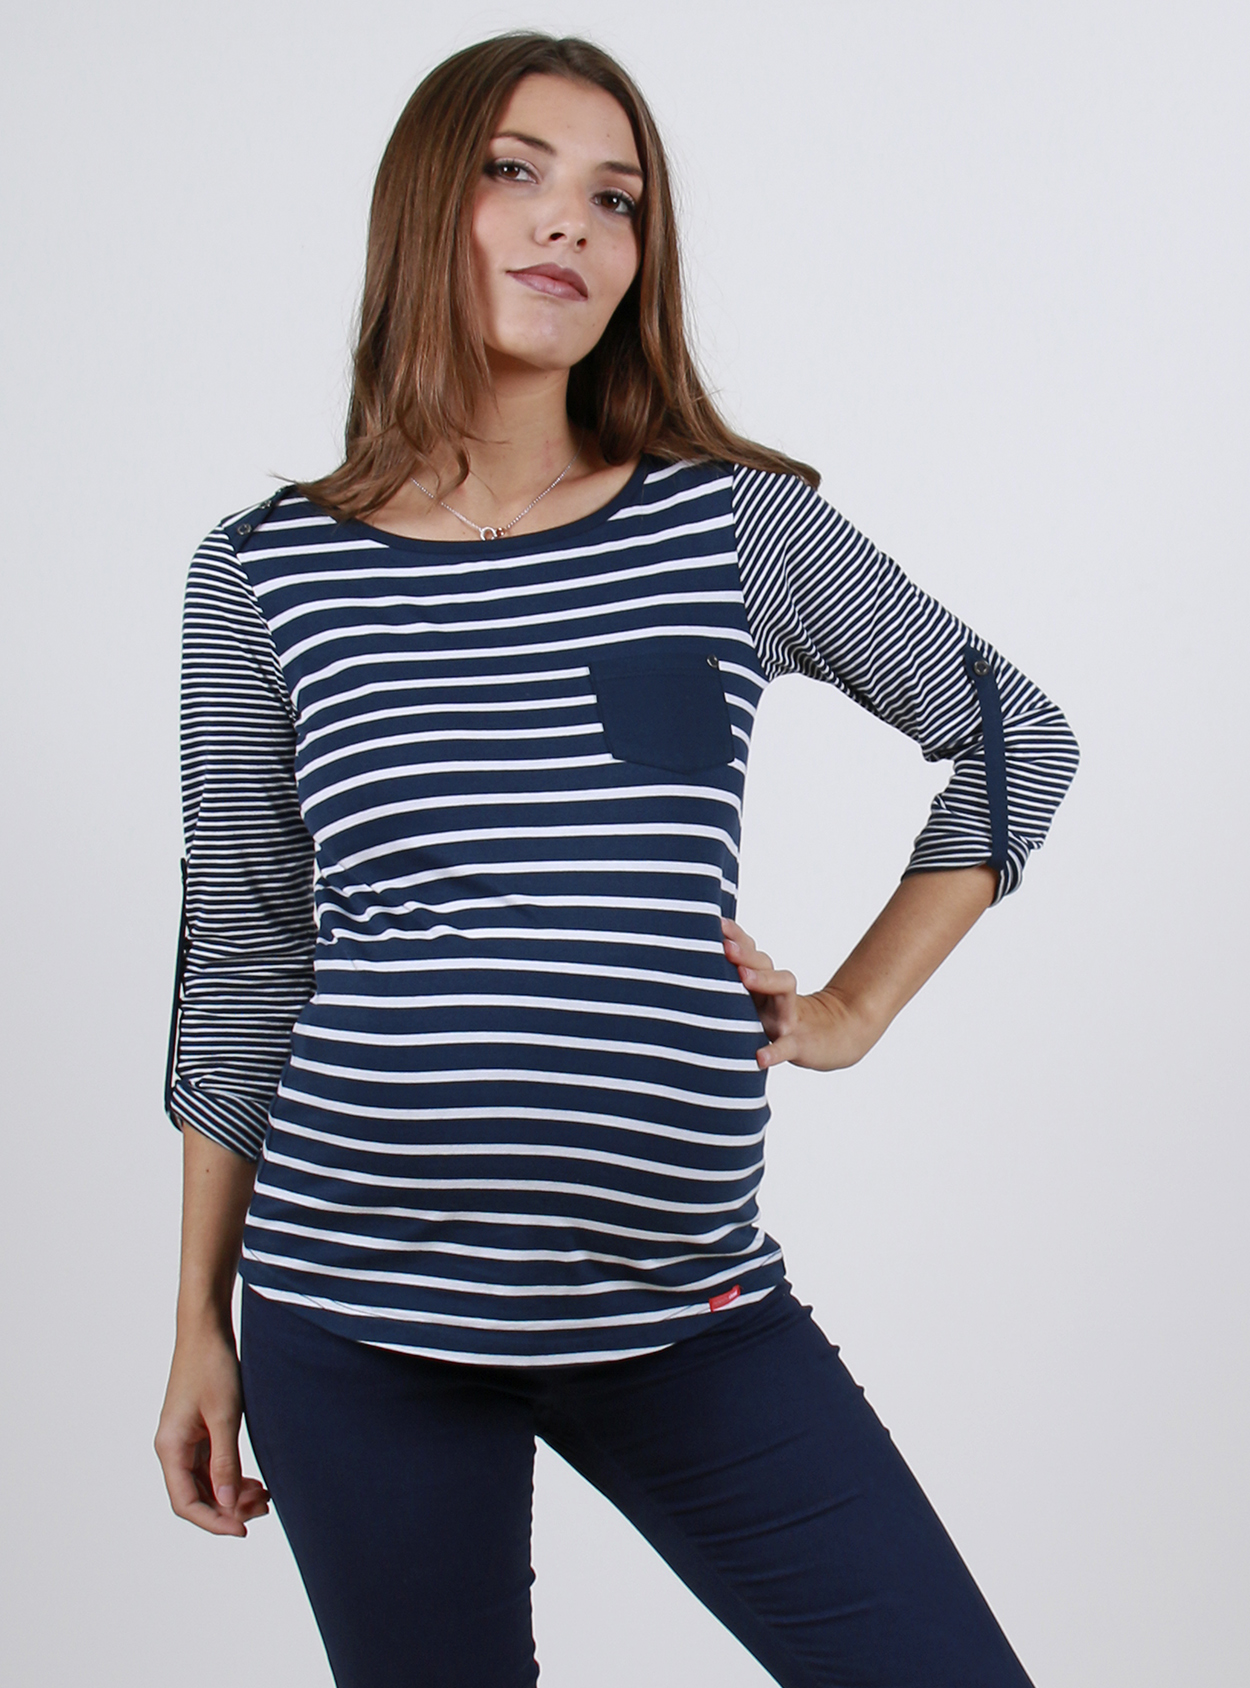 ASOS DESIGN Maternity long sleeve crew neck t-shirt with bump ruching in navy. £ ASOS DESIGN Maternity ultimate crew neck t-shirt in white. £ ASOS DESIGN Maternity ultimate crew neck t-shirt in black. £ ASOS DESIGN Maternity t-shirt in boyfriend fit with rolled sleeve and curved hem in black.